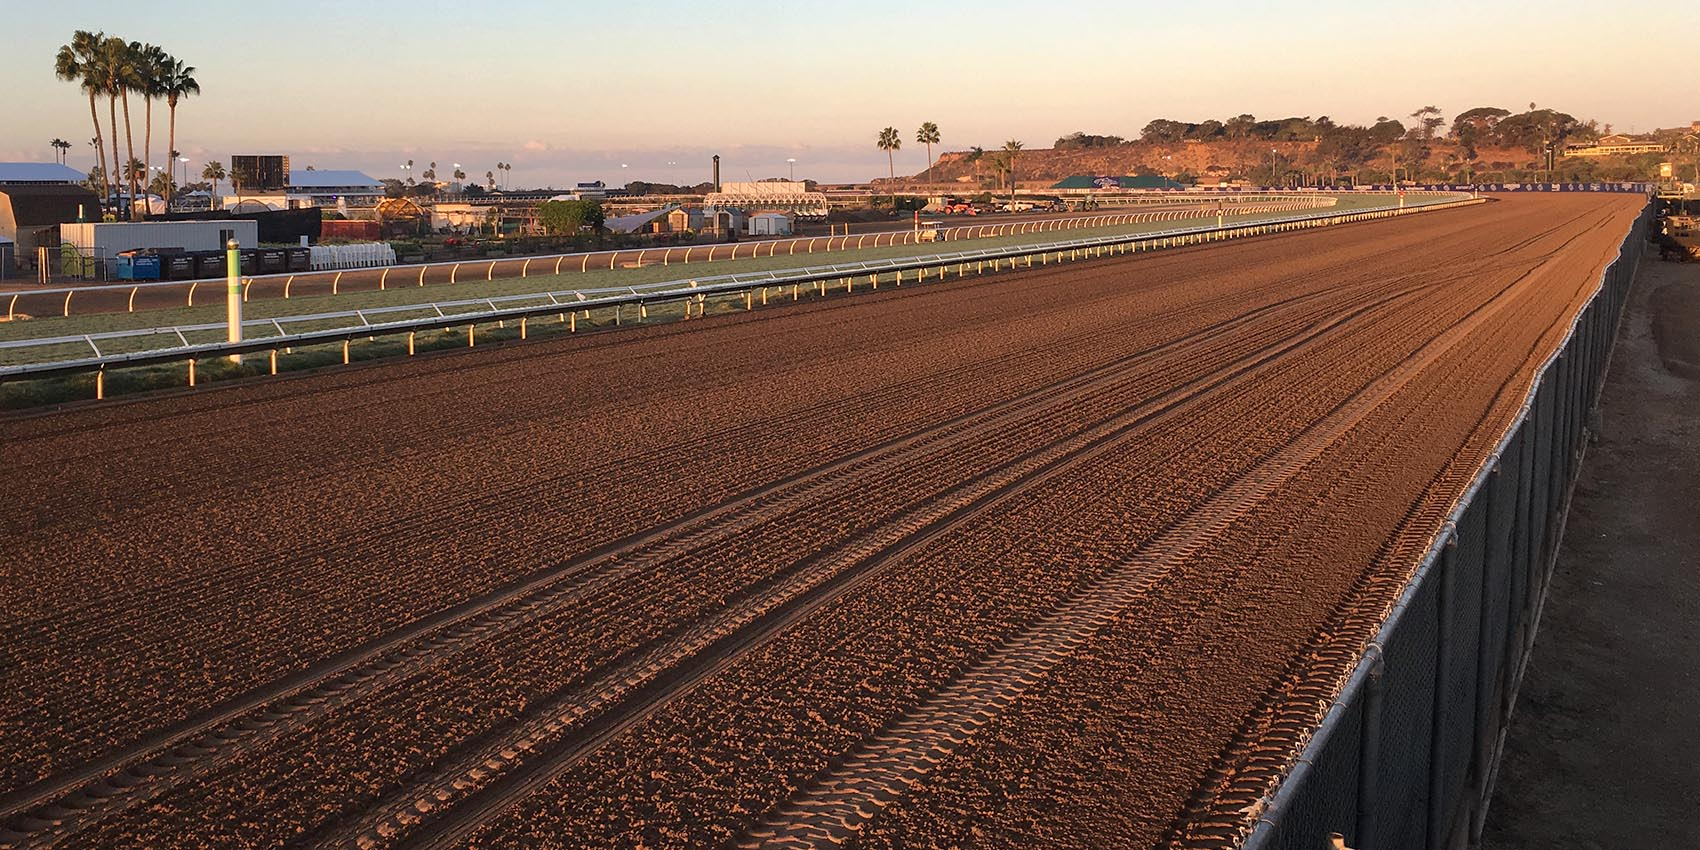 The Del Mar racetrack in Del Mar, Calif., where the 34th Breeders' Cup was held. (Alex Ashlock/Here & Now)